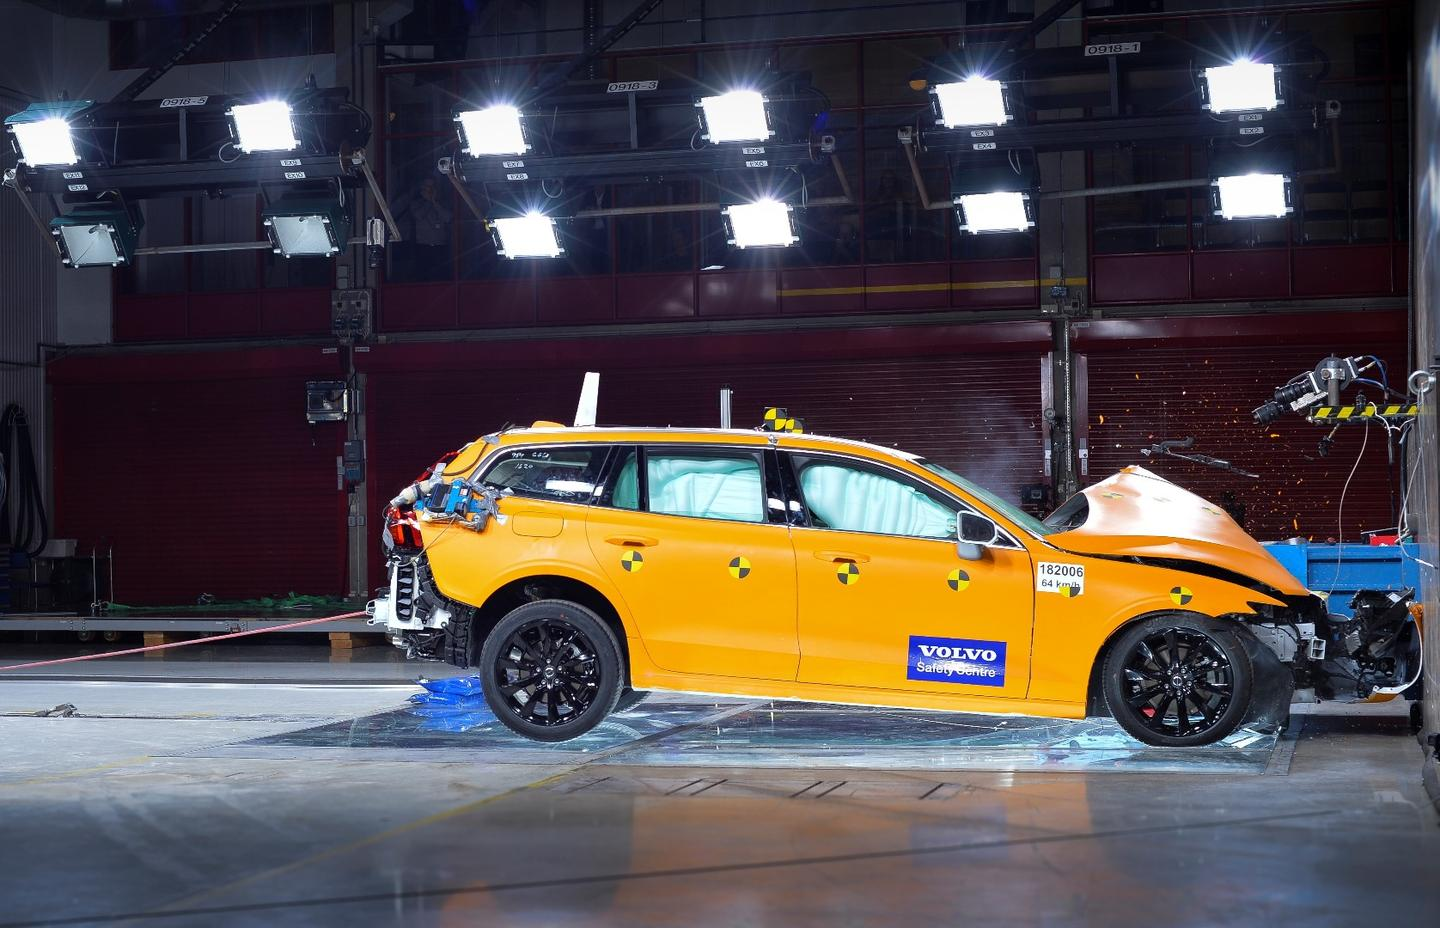 Volvo continues to make safety a priority